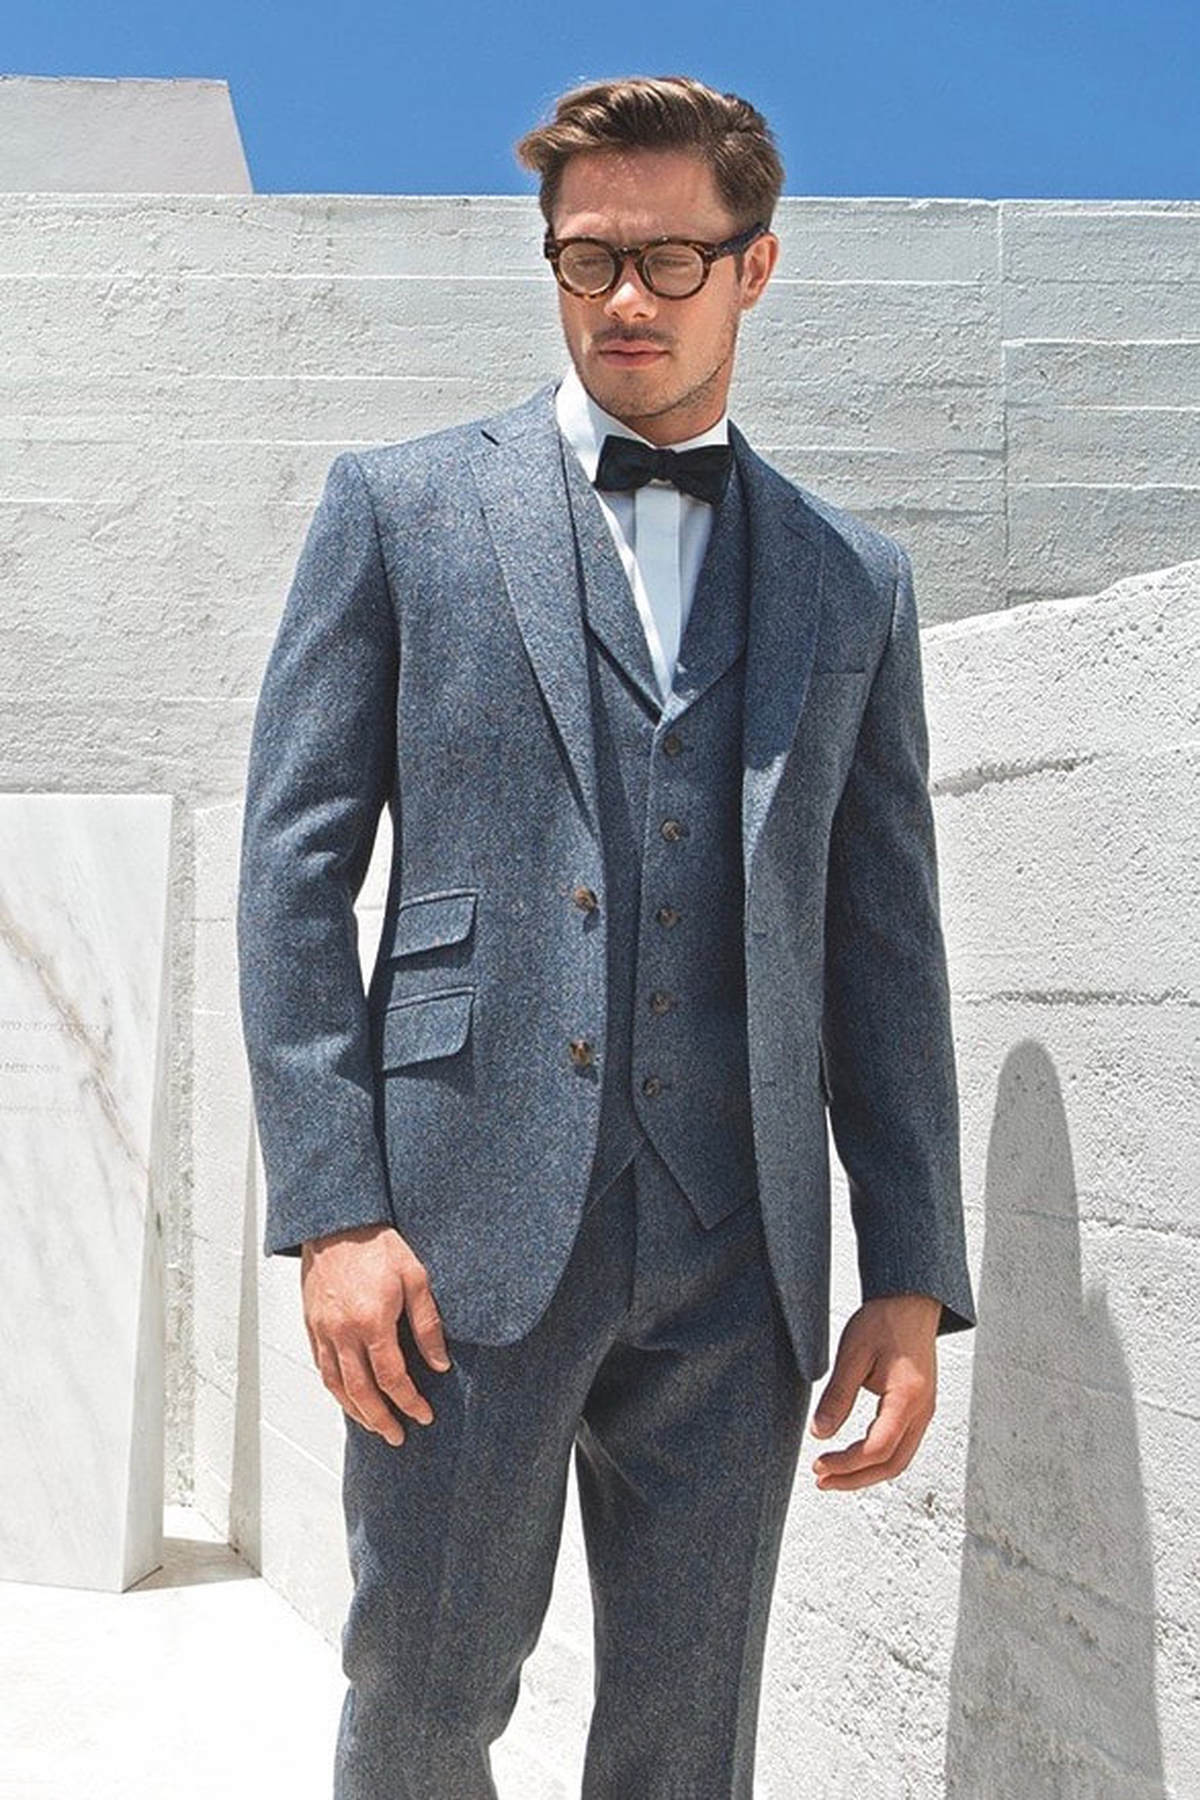 Blue Tweed Suit Hire - PARKERS FORMAL WEAR